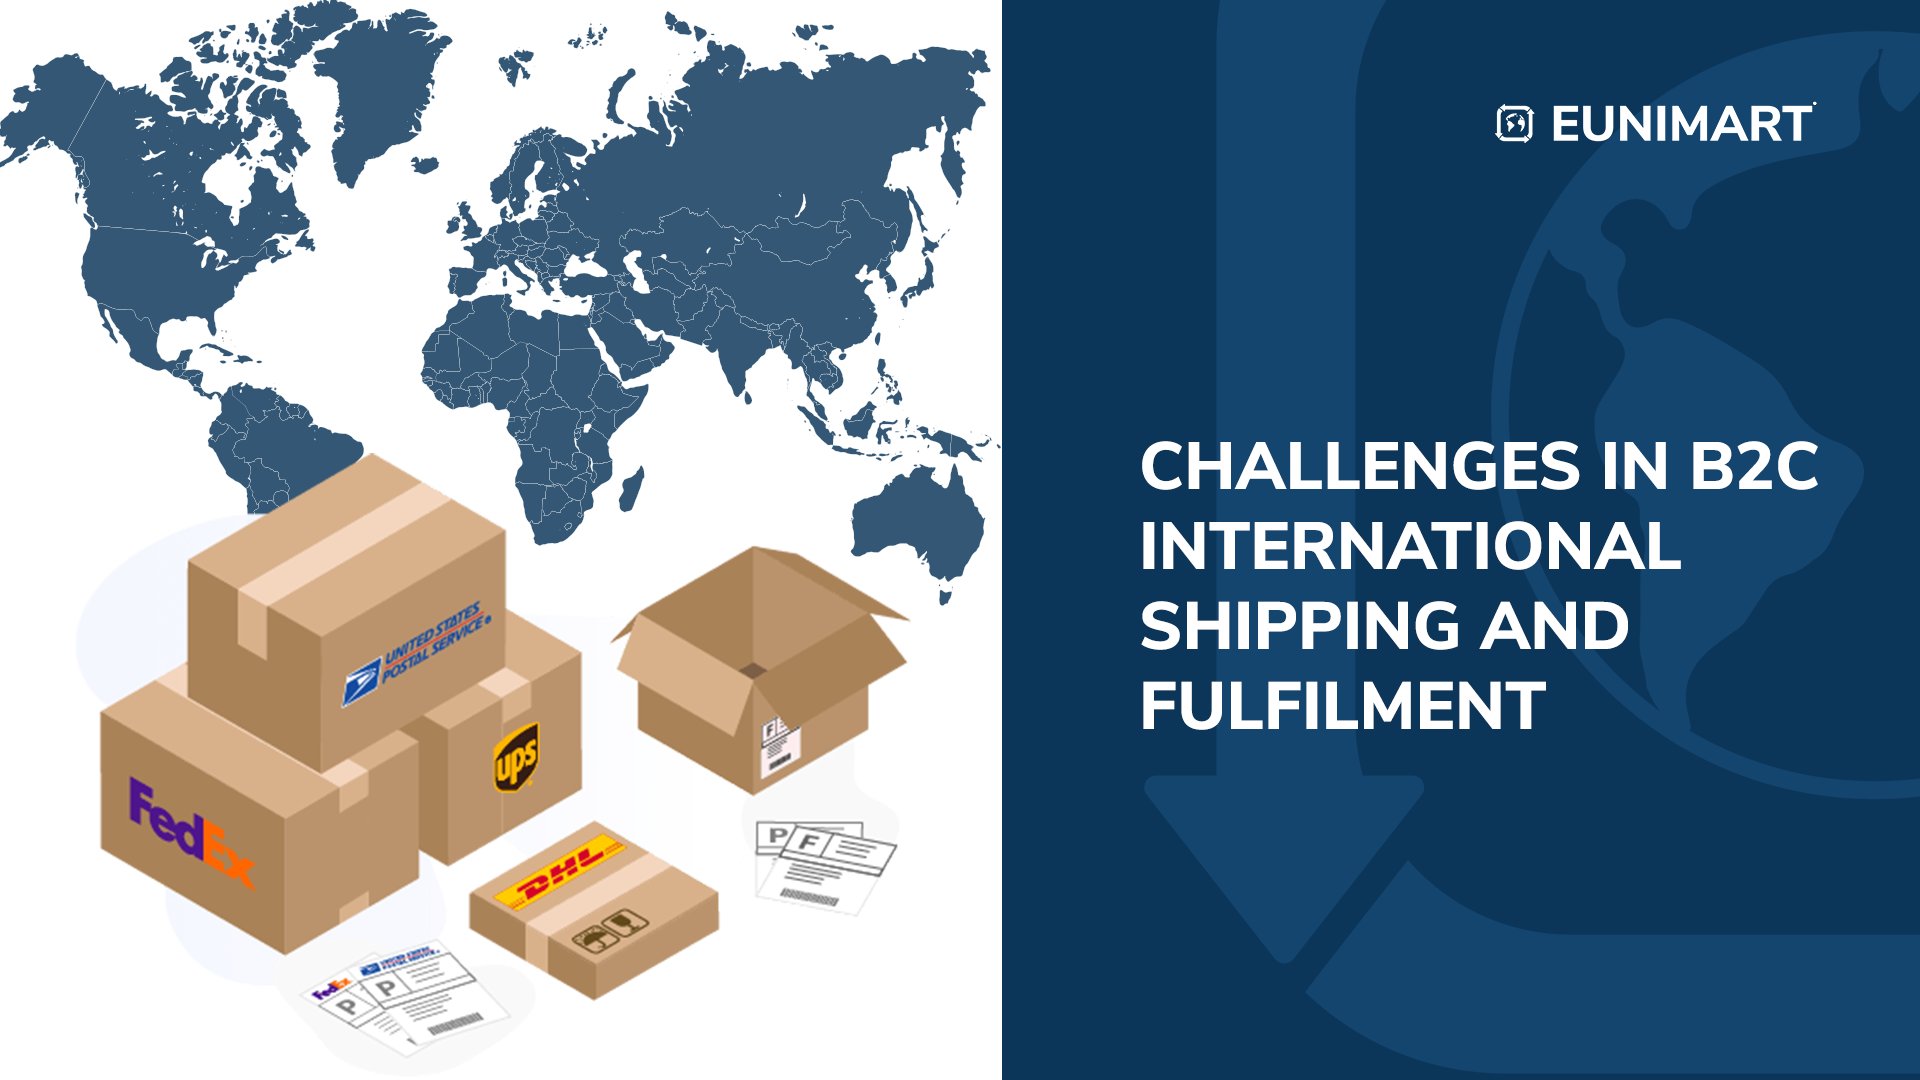 Challenges in B2C International Shipping and Fulfilment